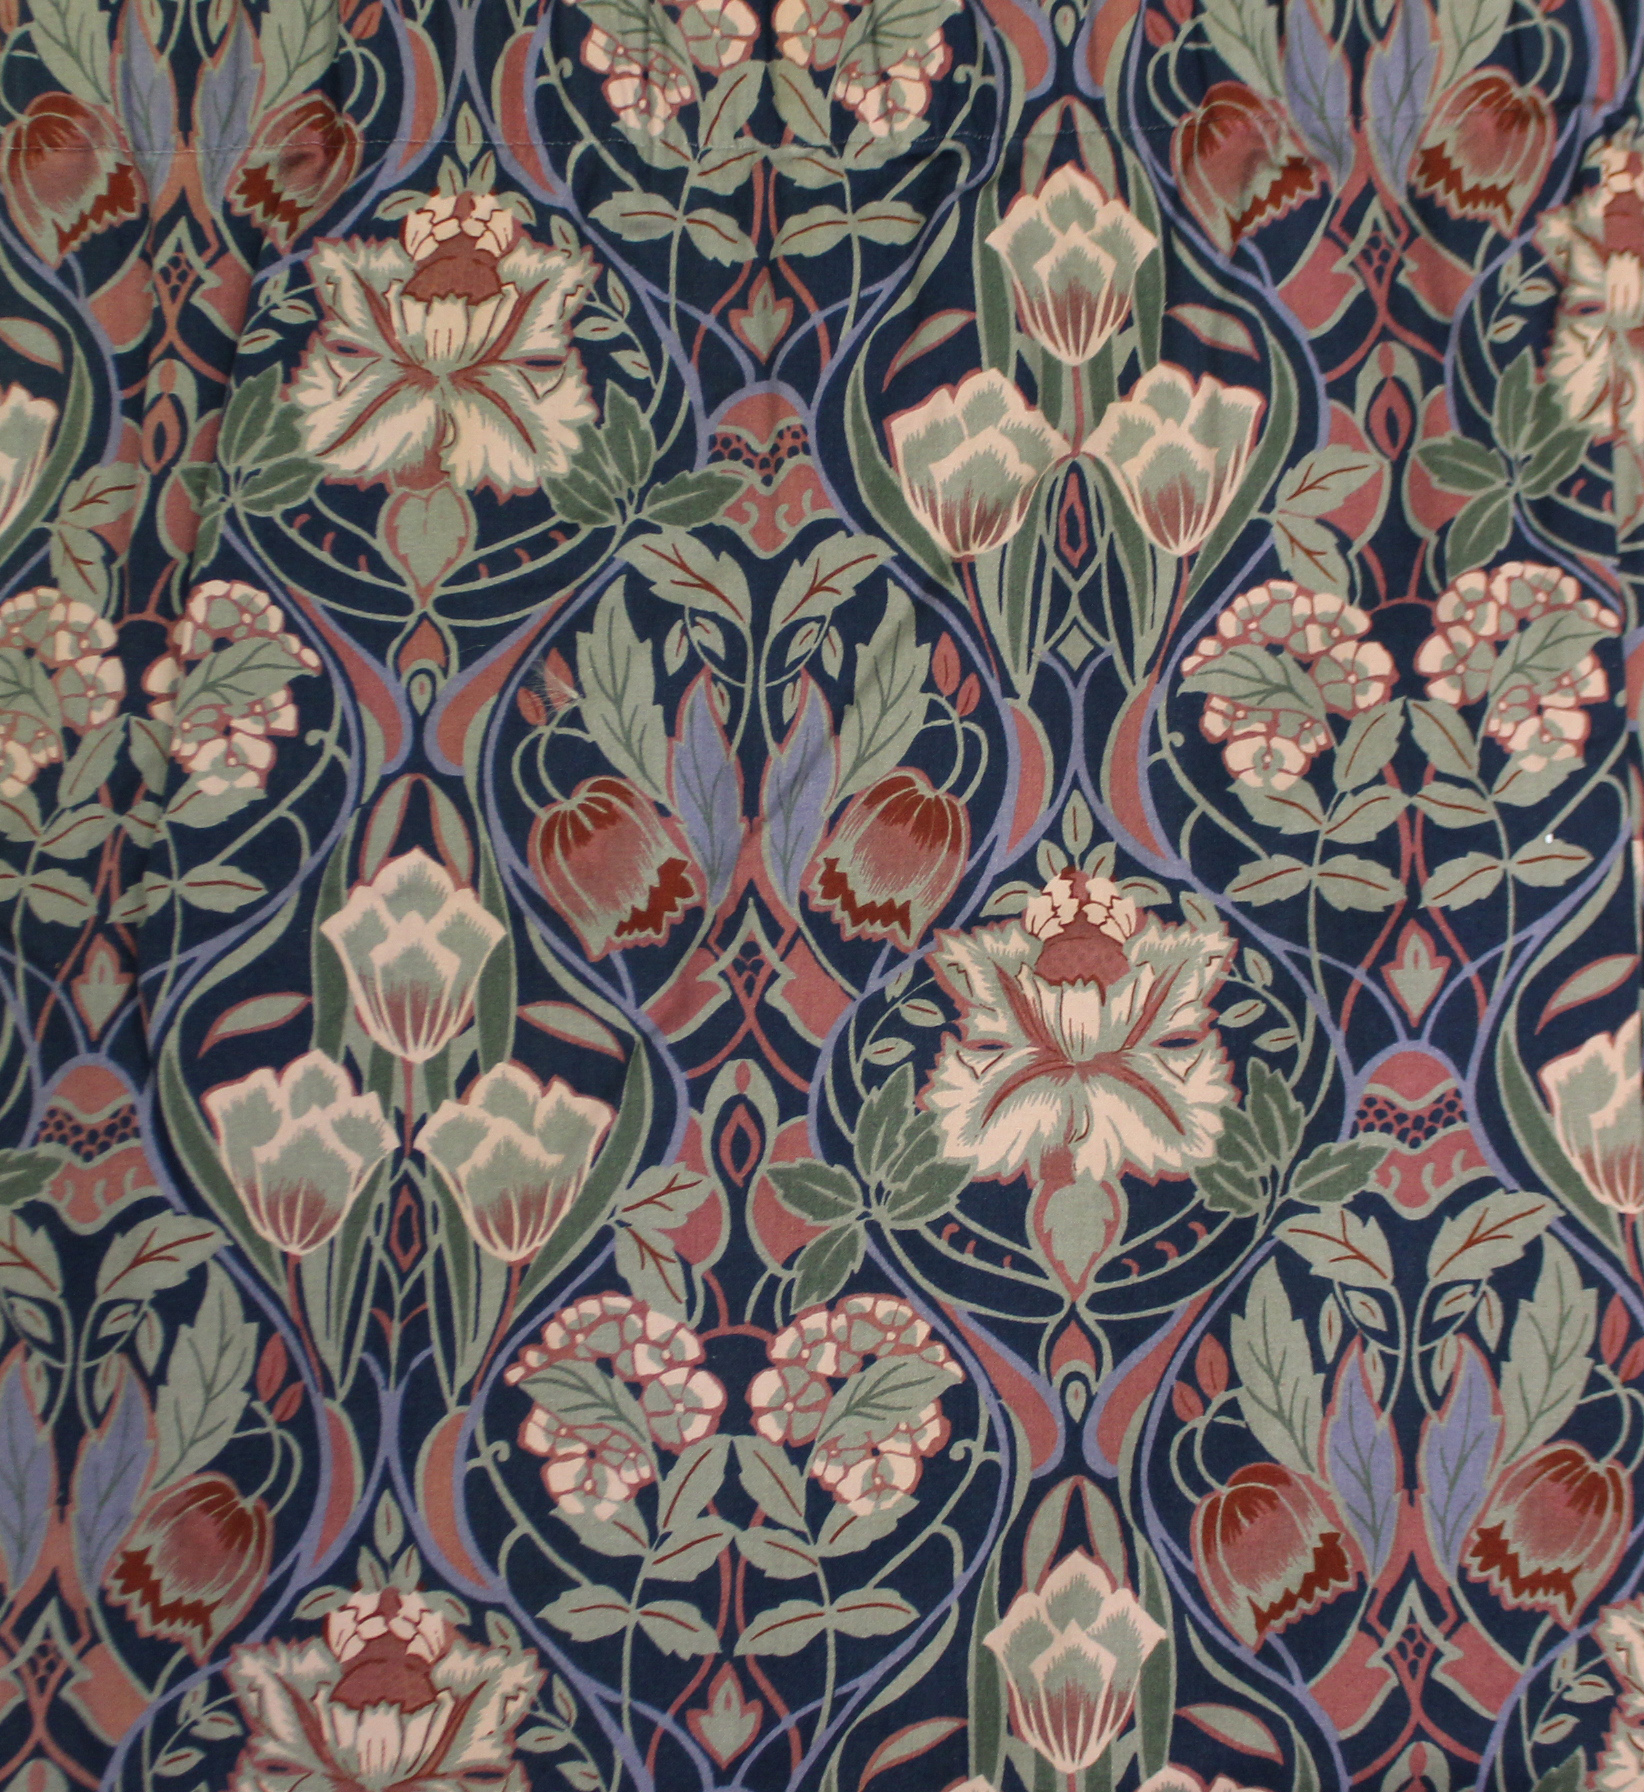 Lot 277 - Two pairs of Liberty-style lined & interlined curtains with all-over repeating multi-coloured floral